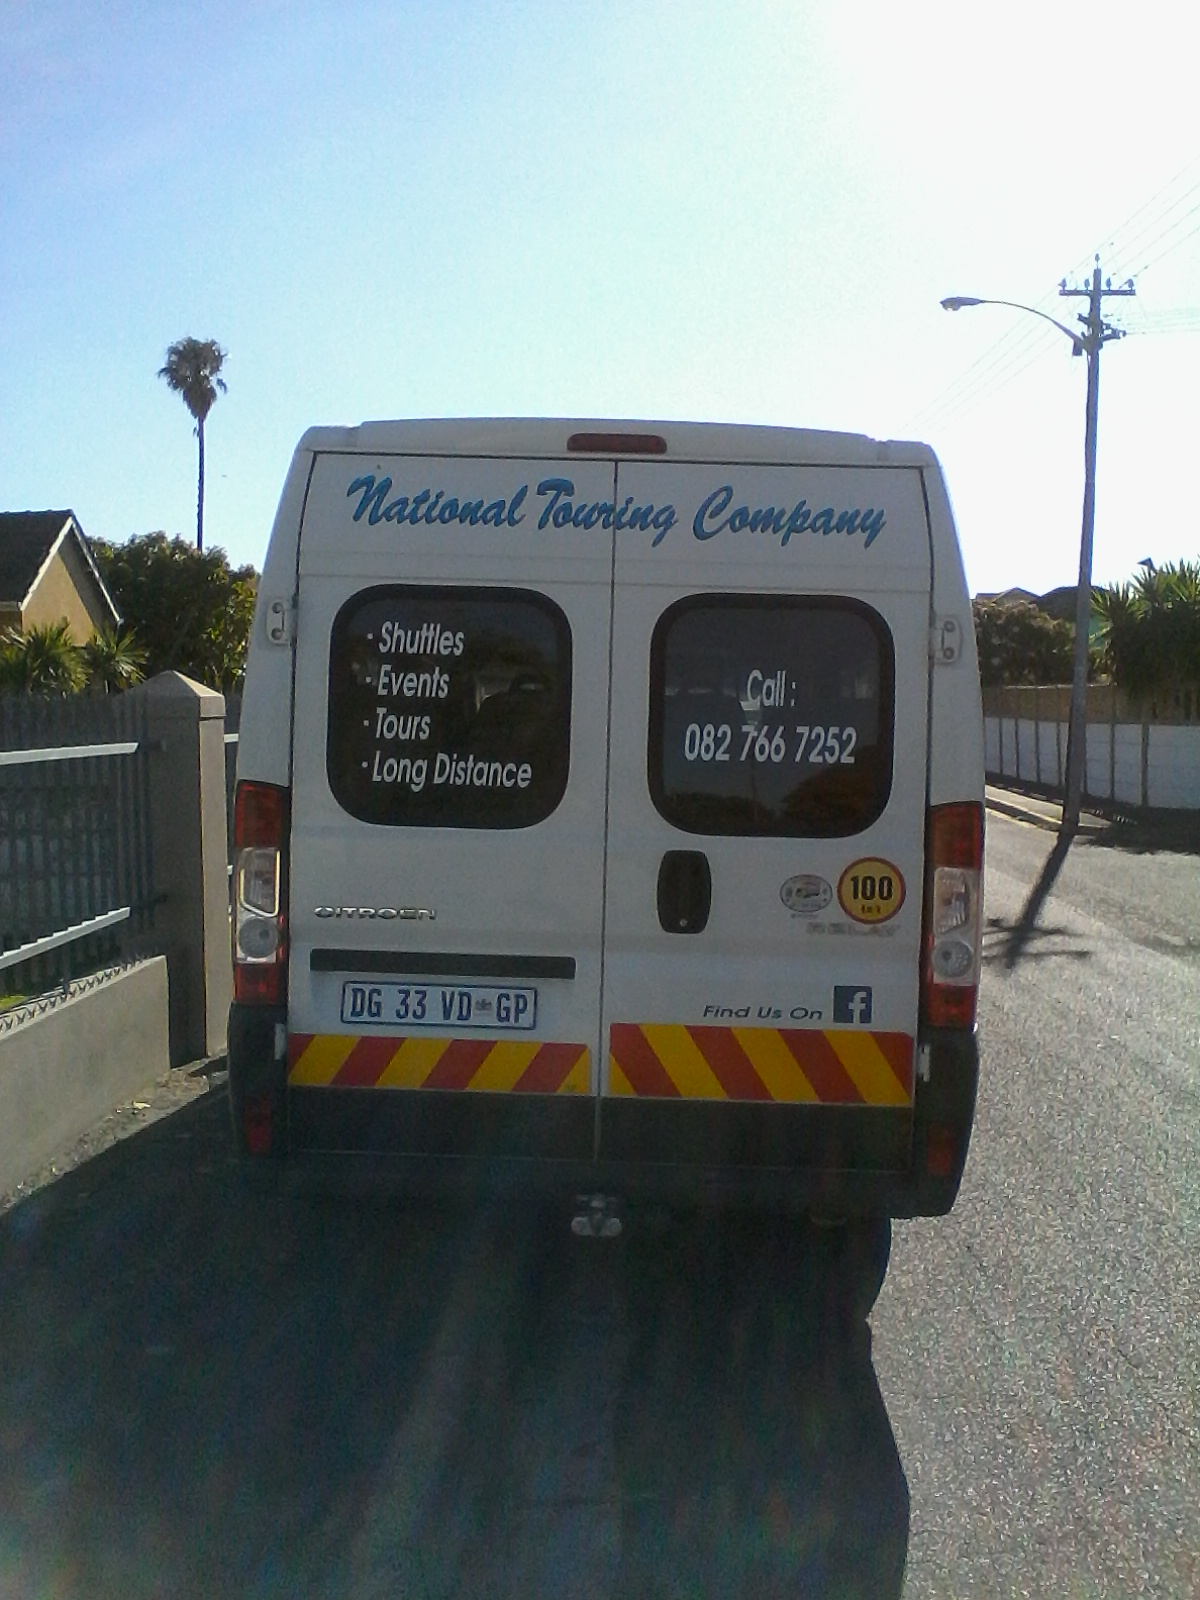 For all your Transport needs and End of Year Functions. (Avoid Drinking and Driving)